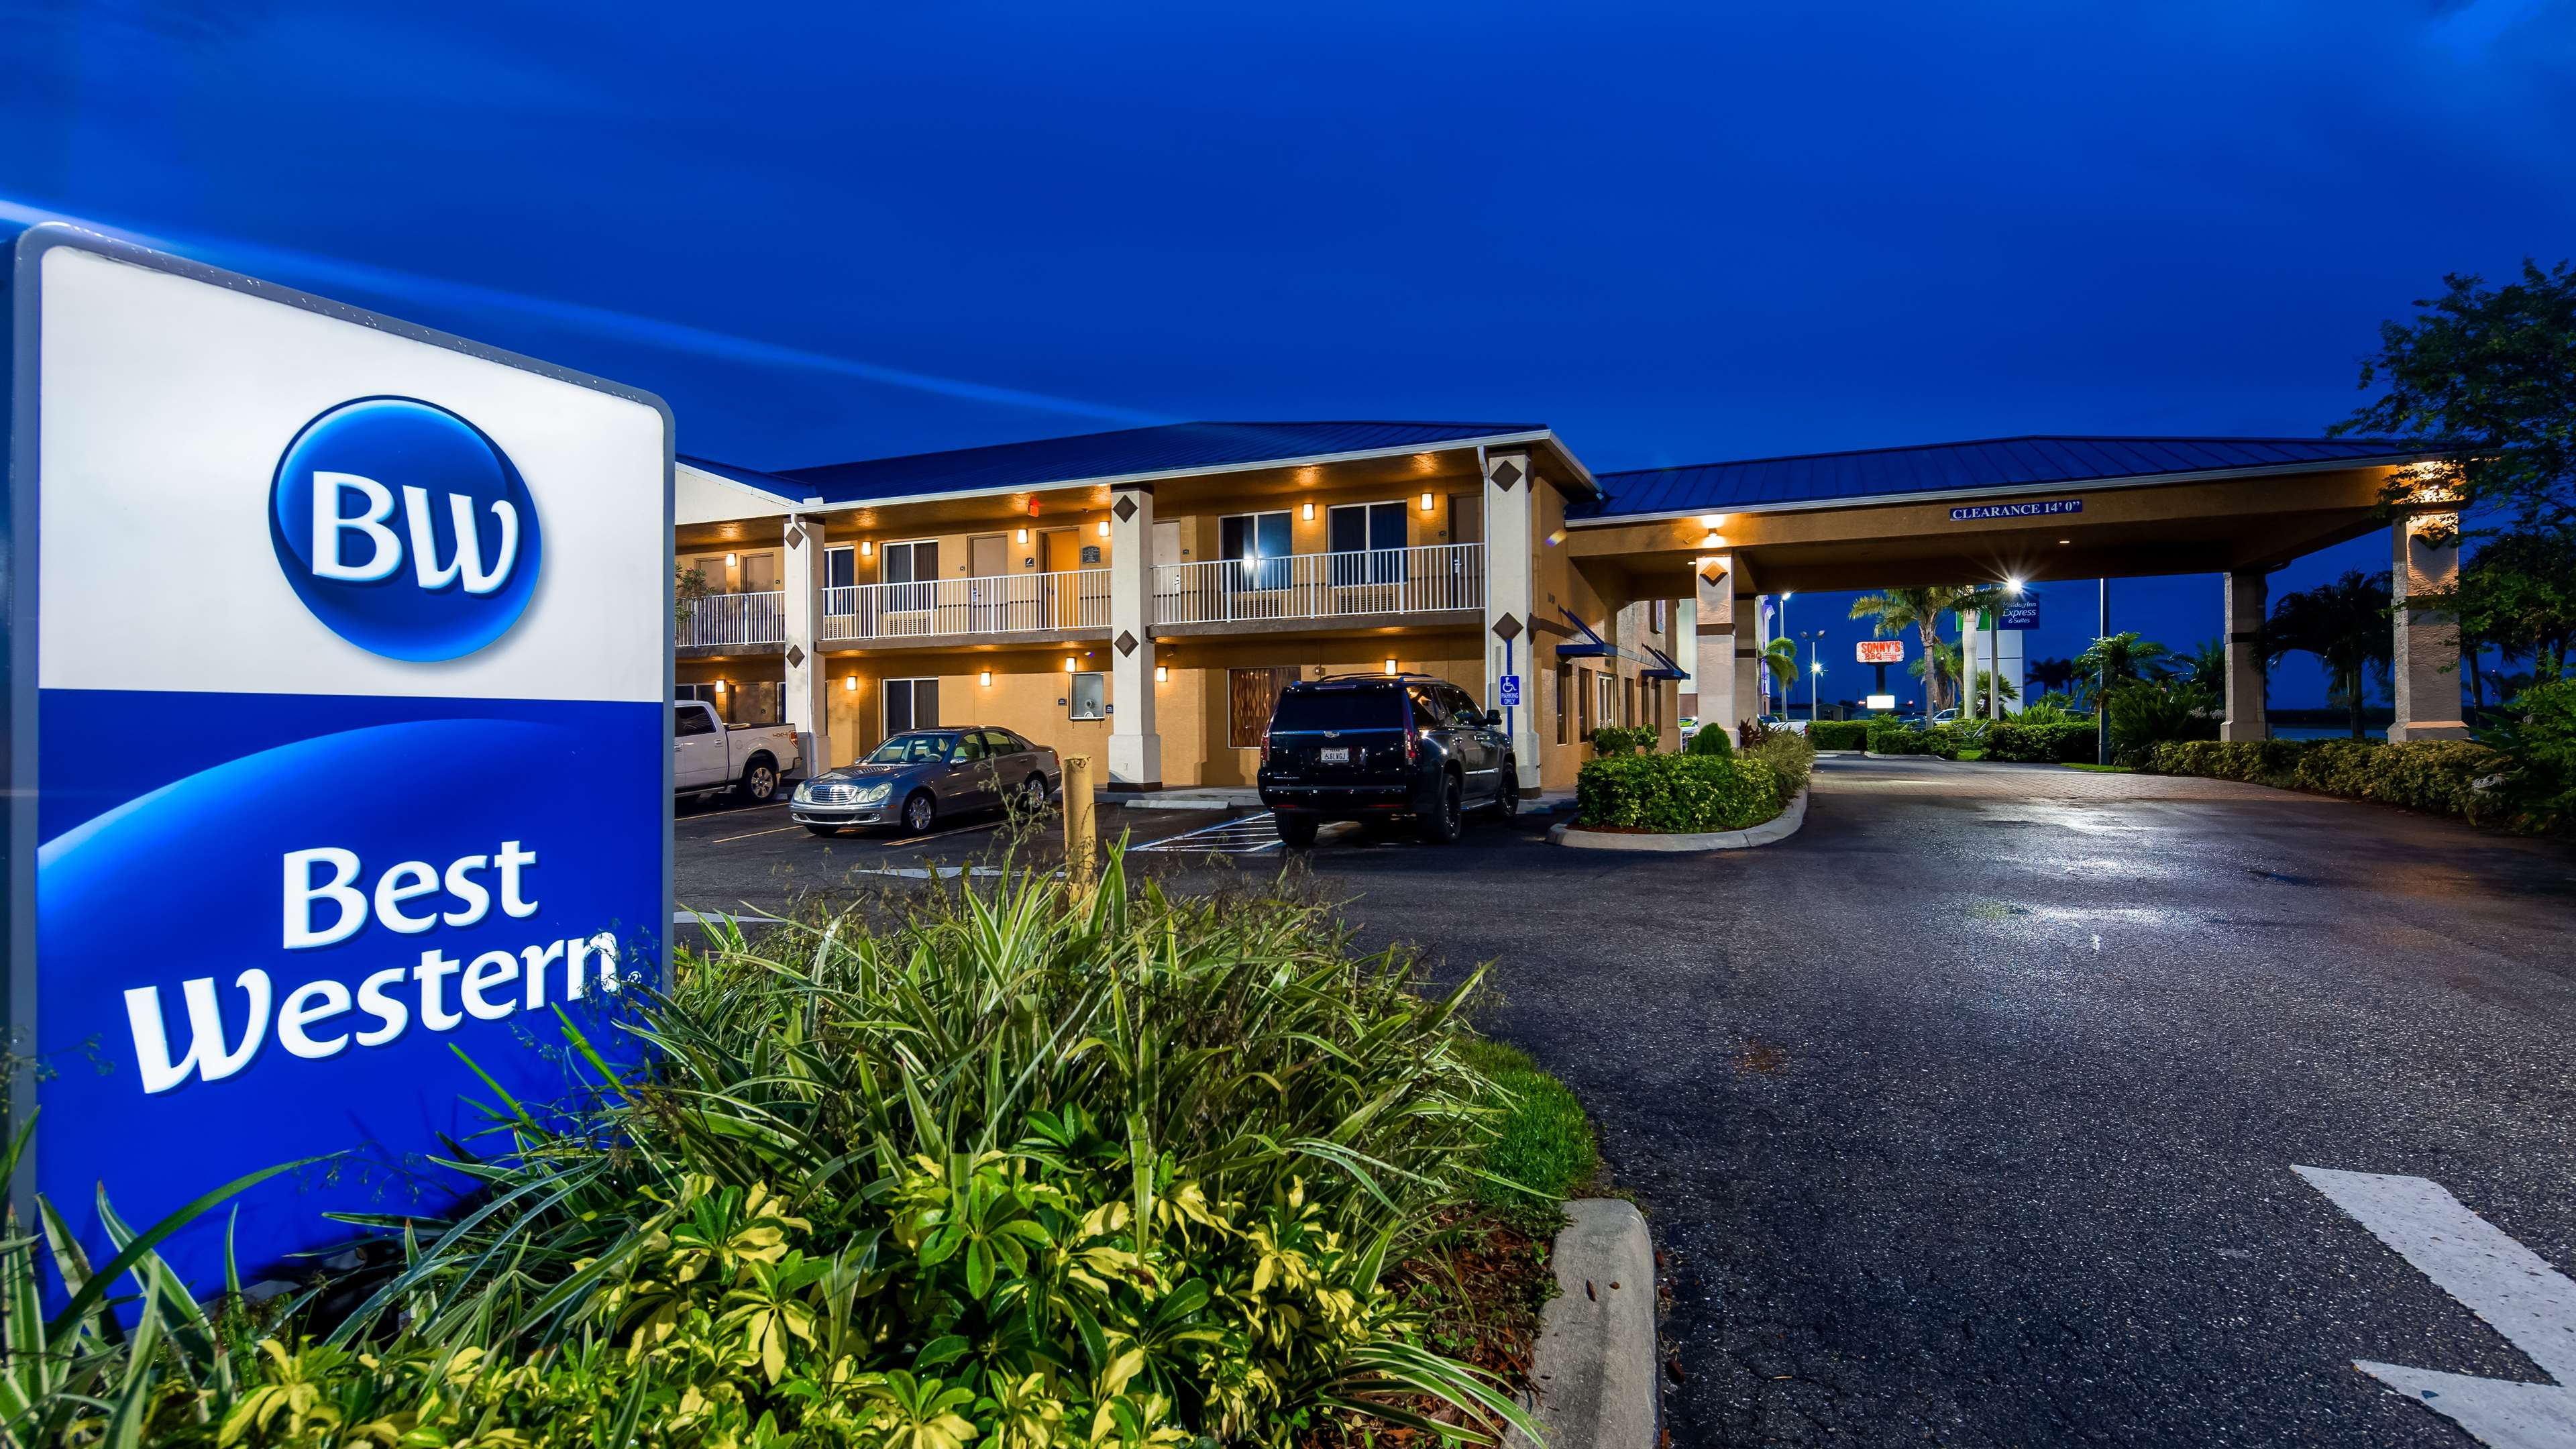 Best Western of Clewiston image 1